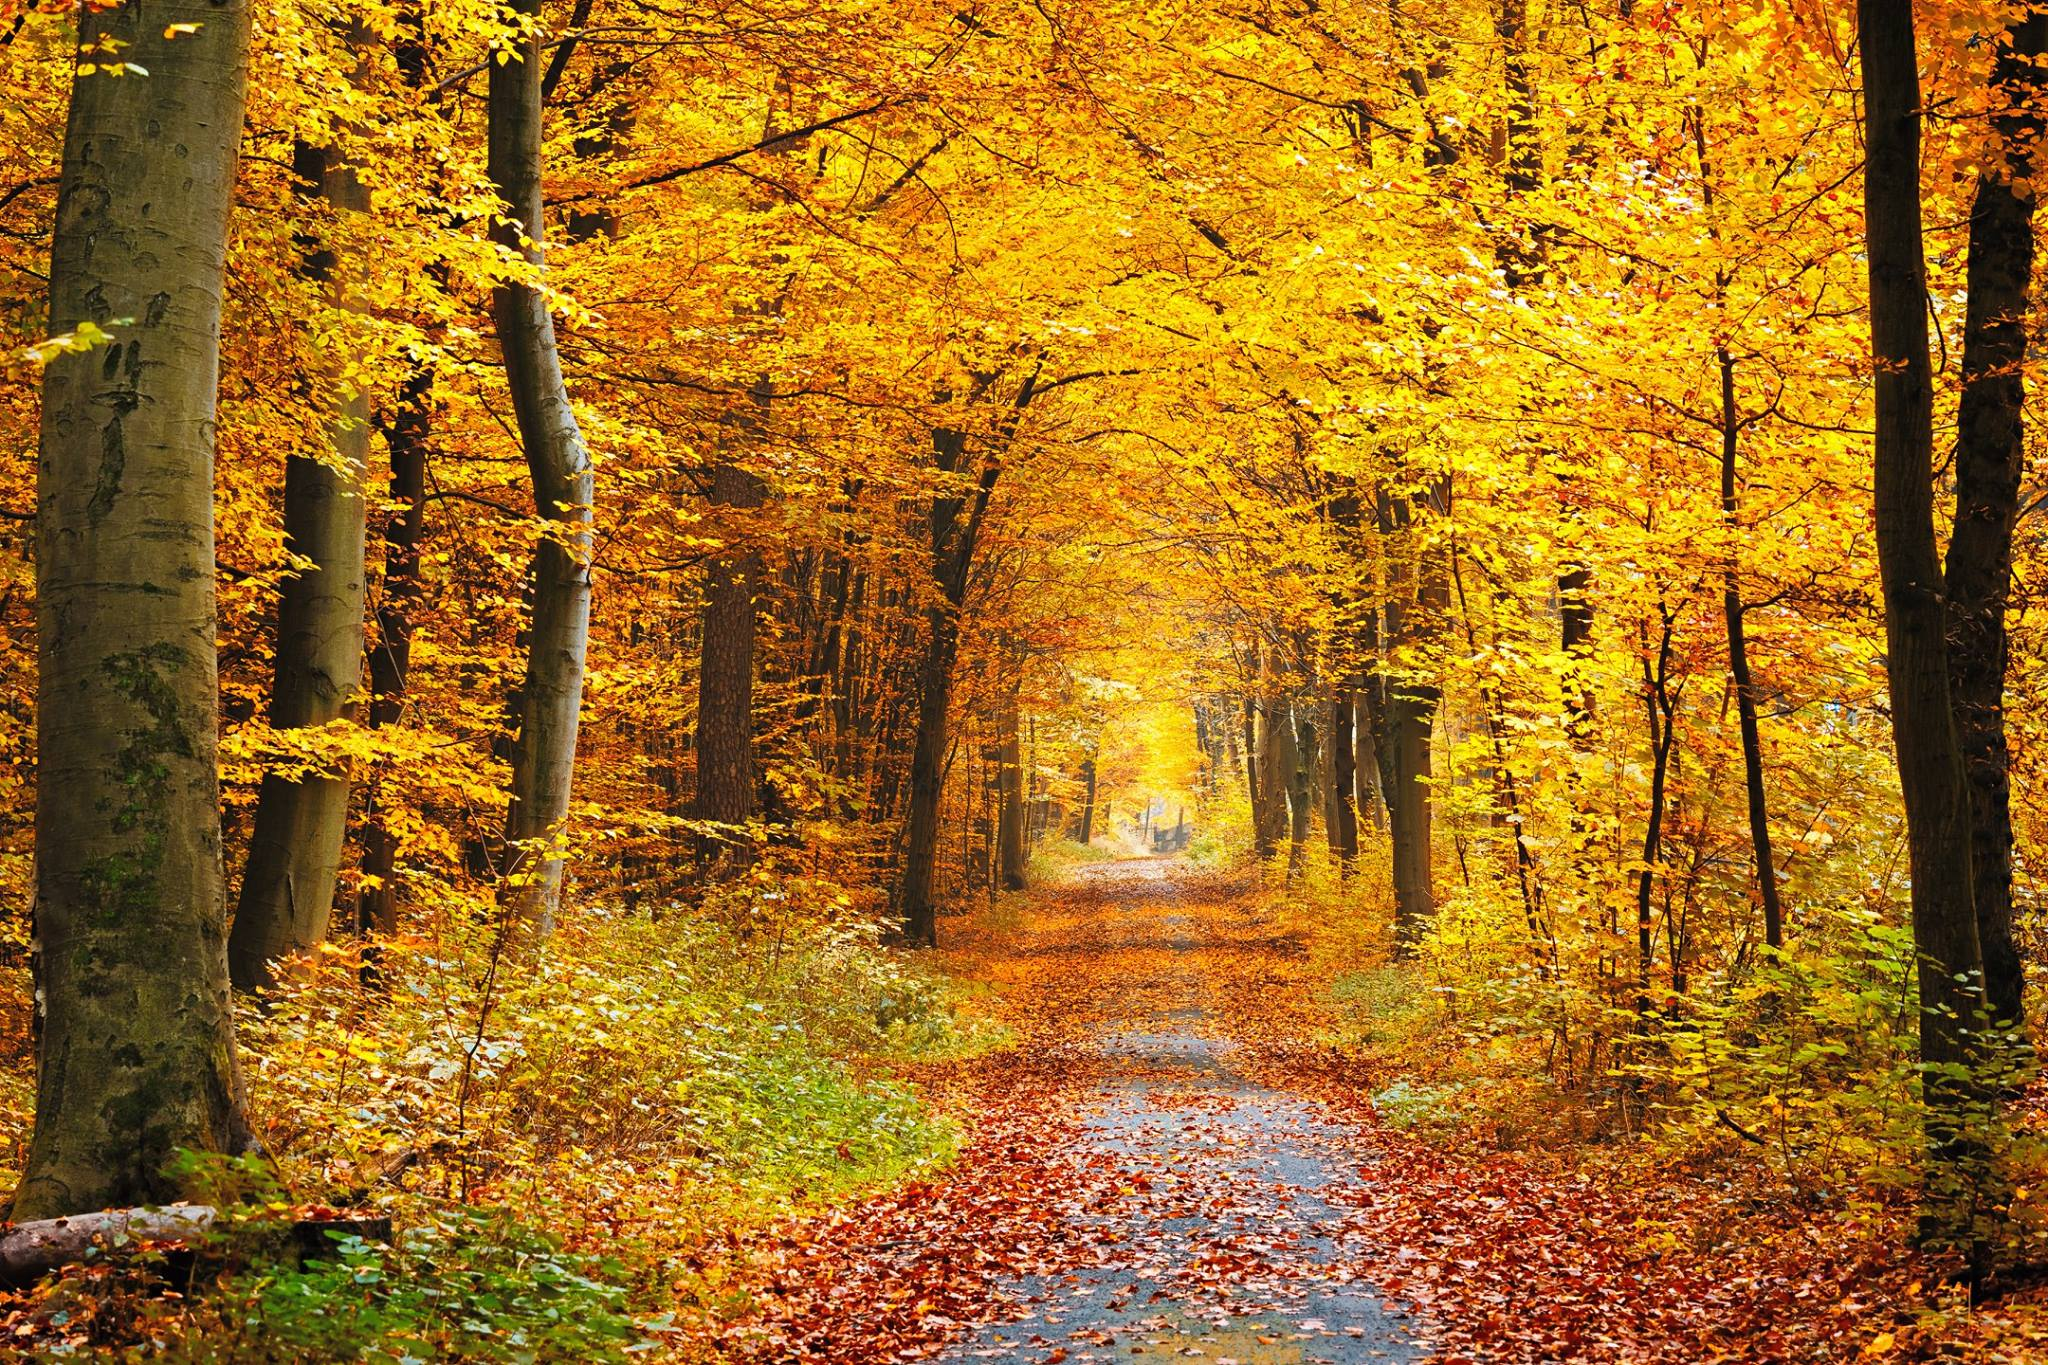 A fall road is shown with logs of orange and yellow aspens.